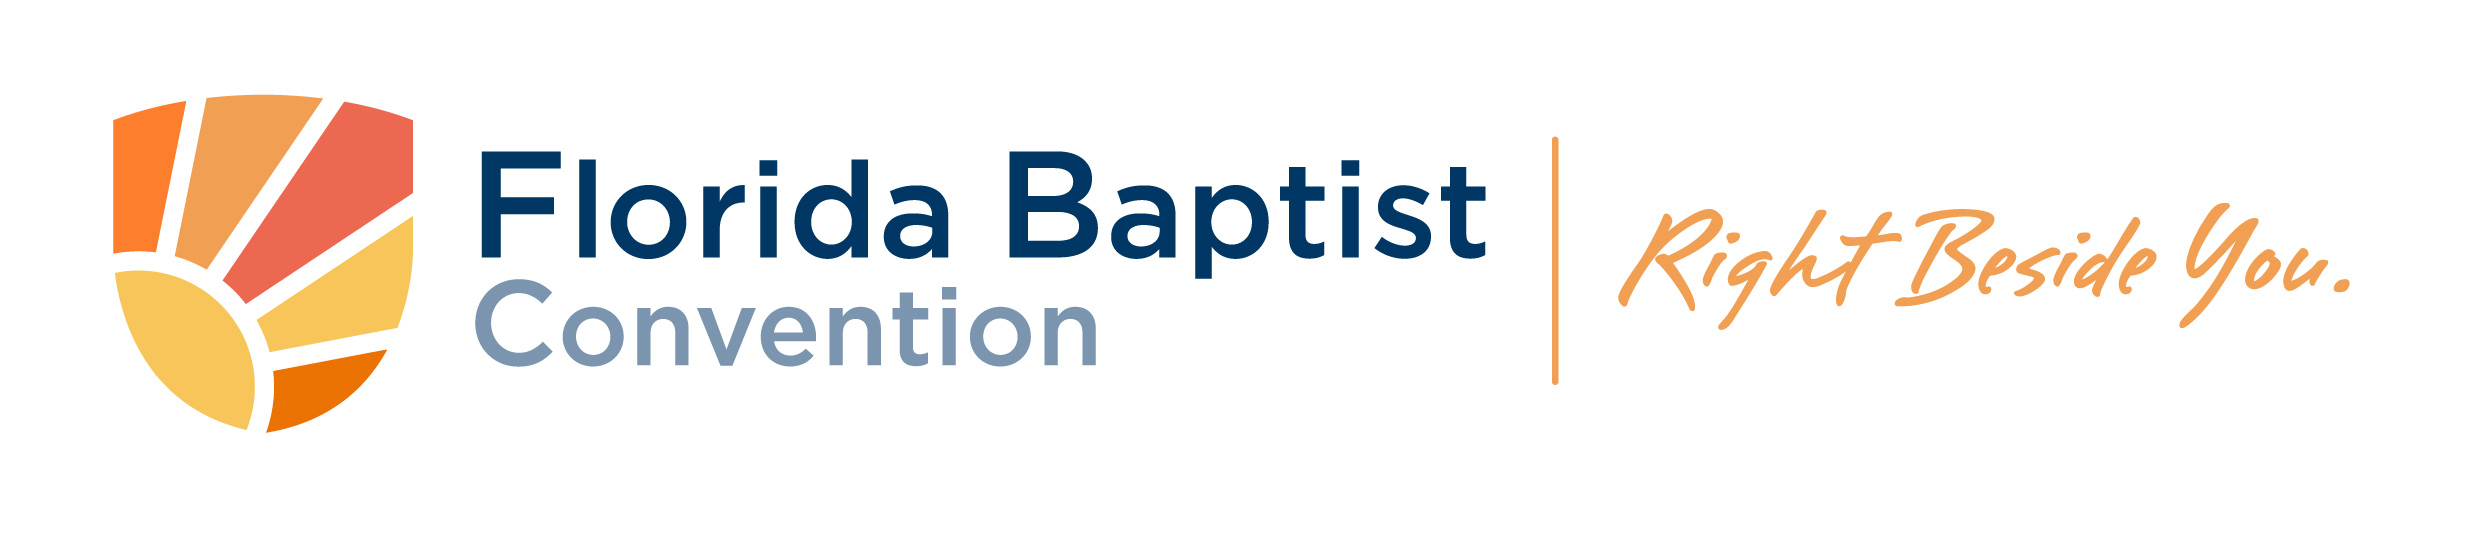 Florida Baptist Convention, FBC Logo, Right Beside You